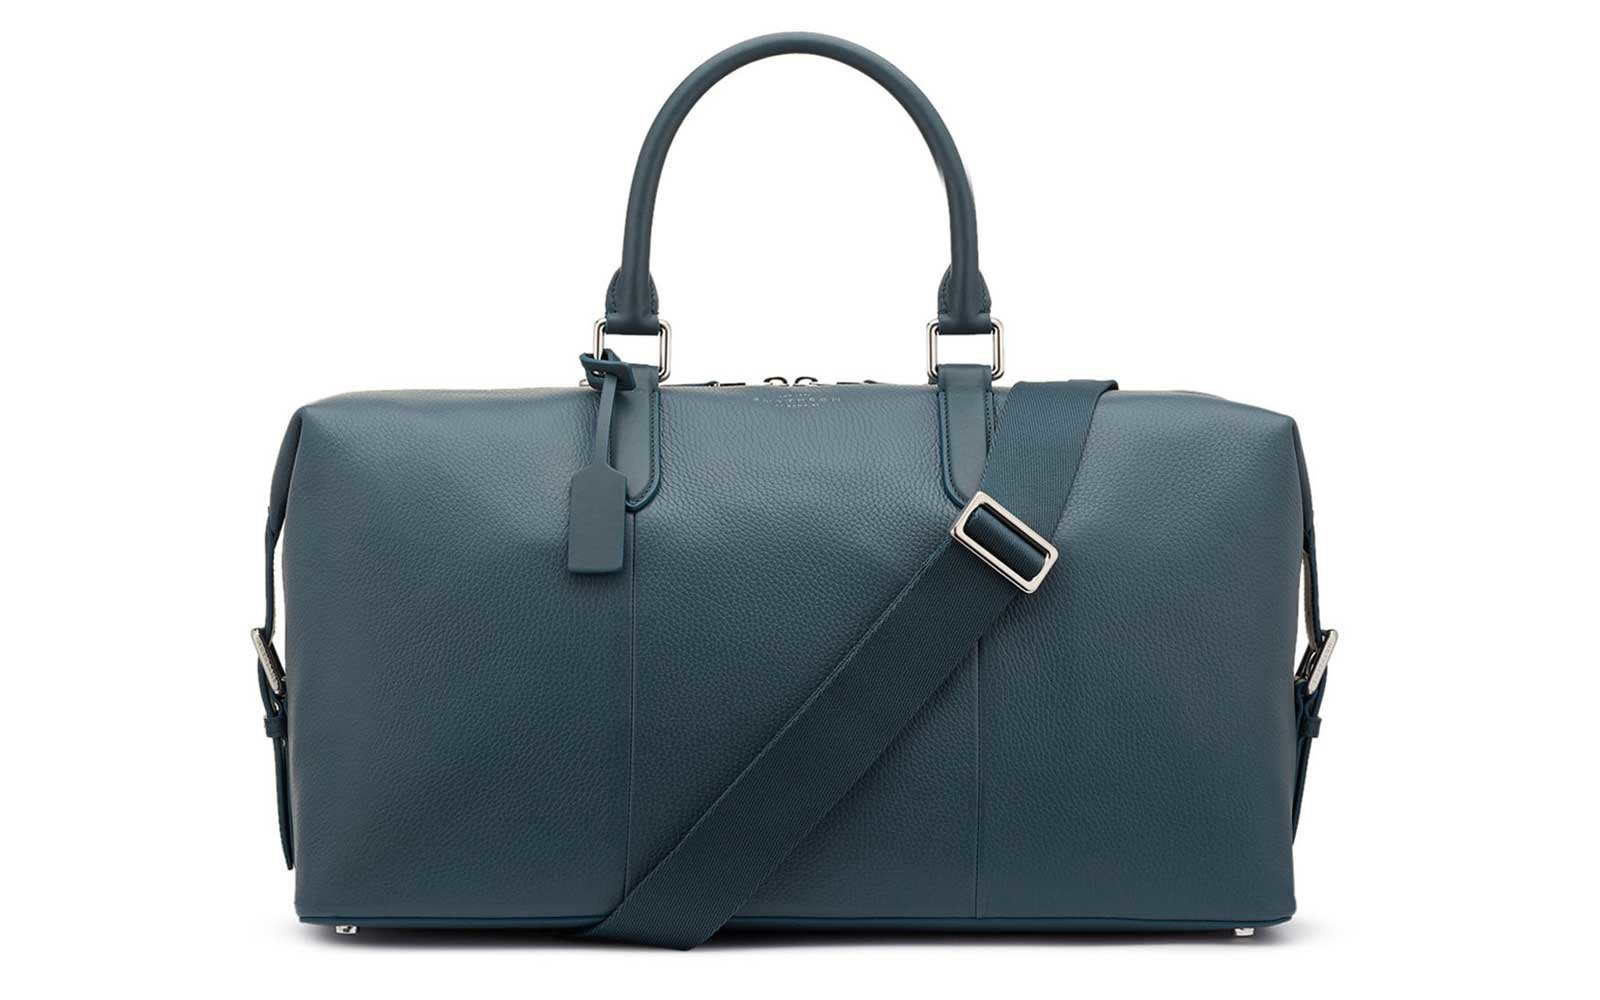 Smythson Duffel Bag for Travel